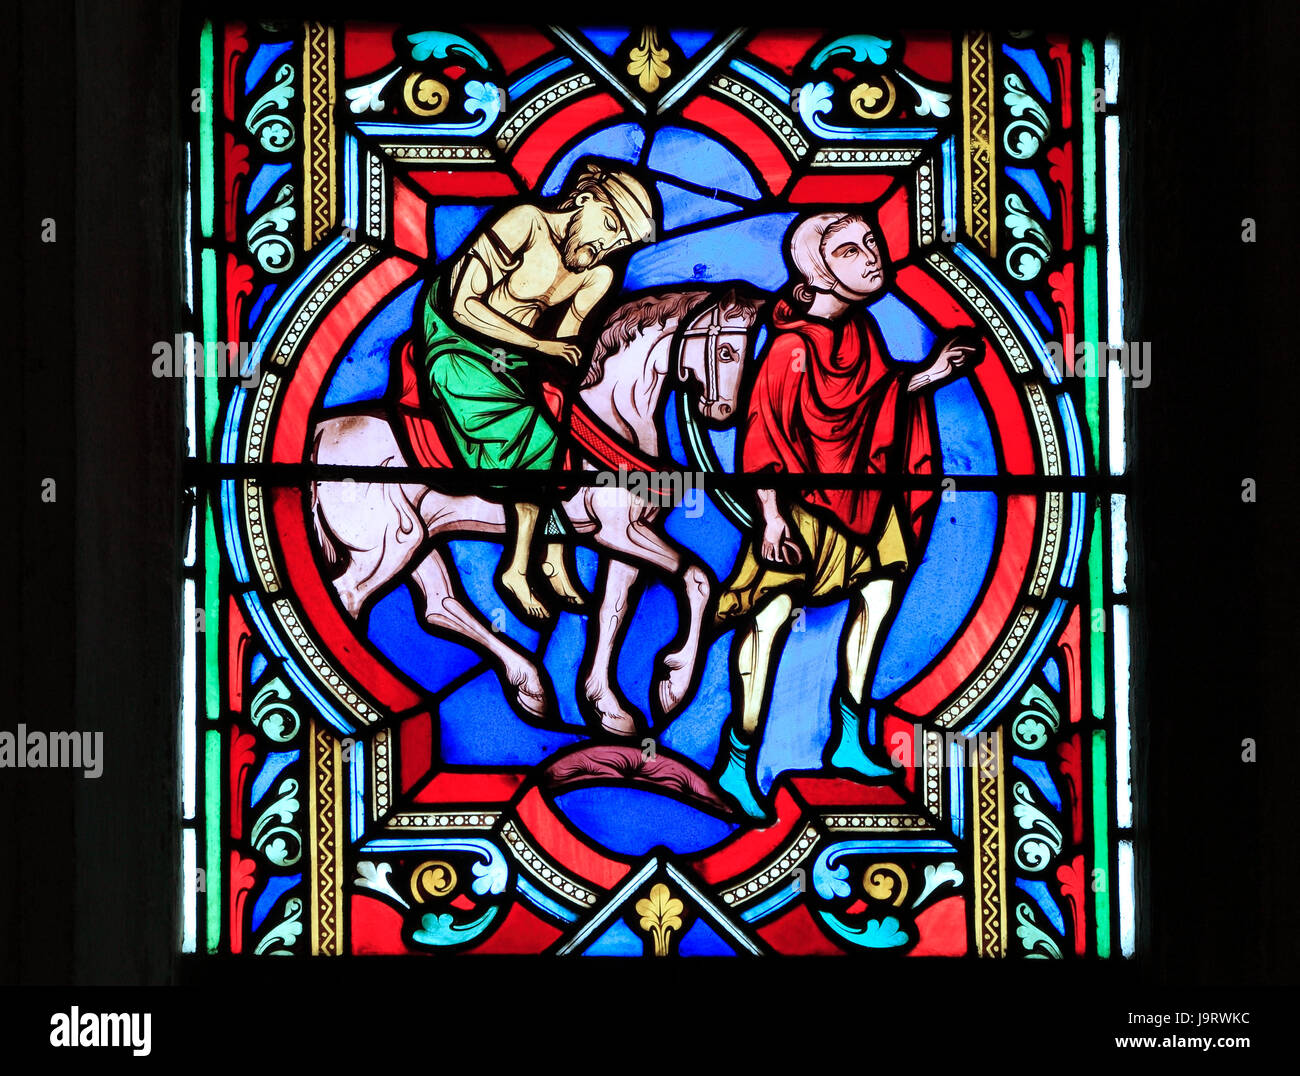 The Good Samaritan Parable,  Samaritan carries the injured traveller on his horse, by Oudinot of Paris, 1859, Feltwell, - Stock Image